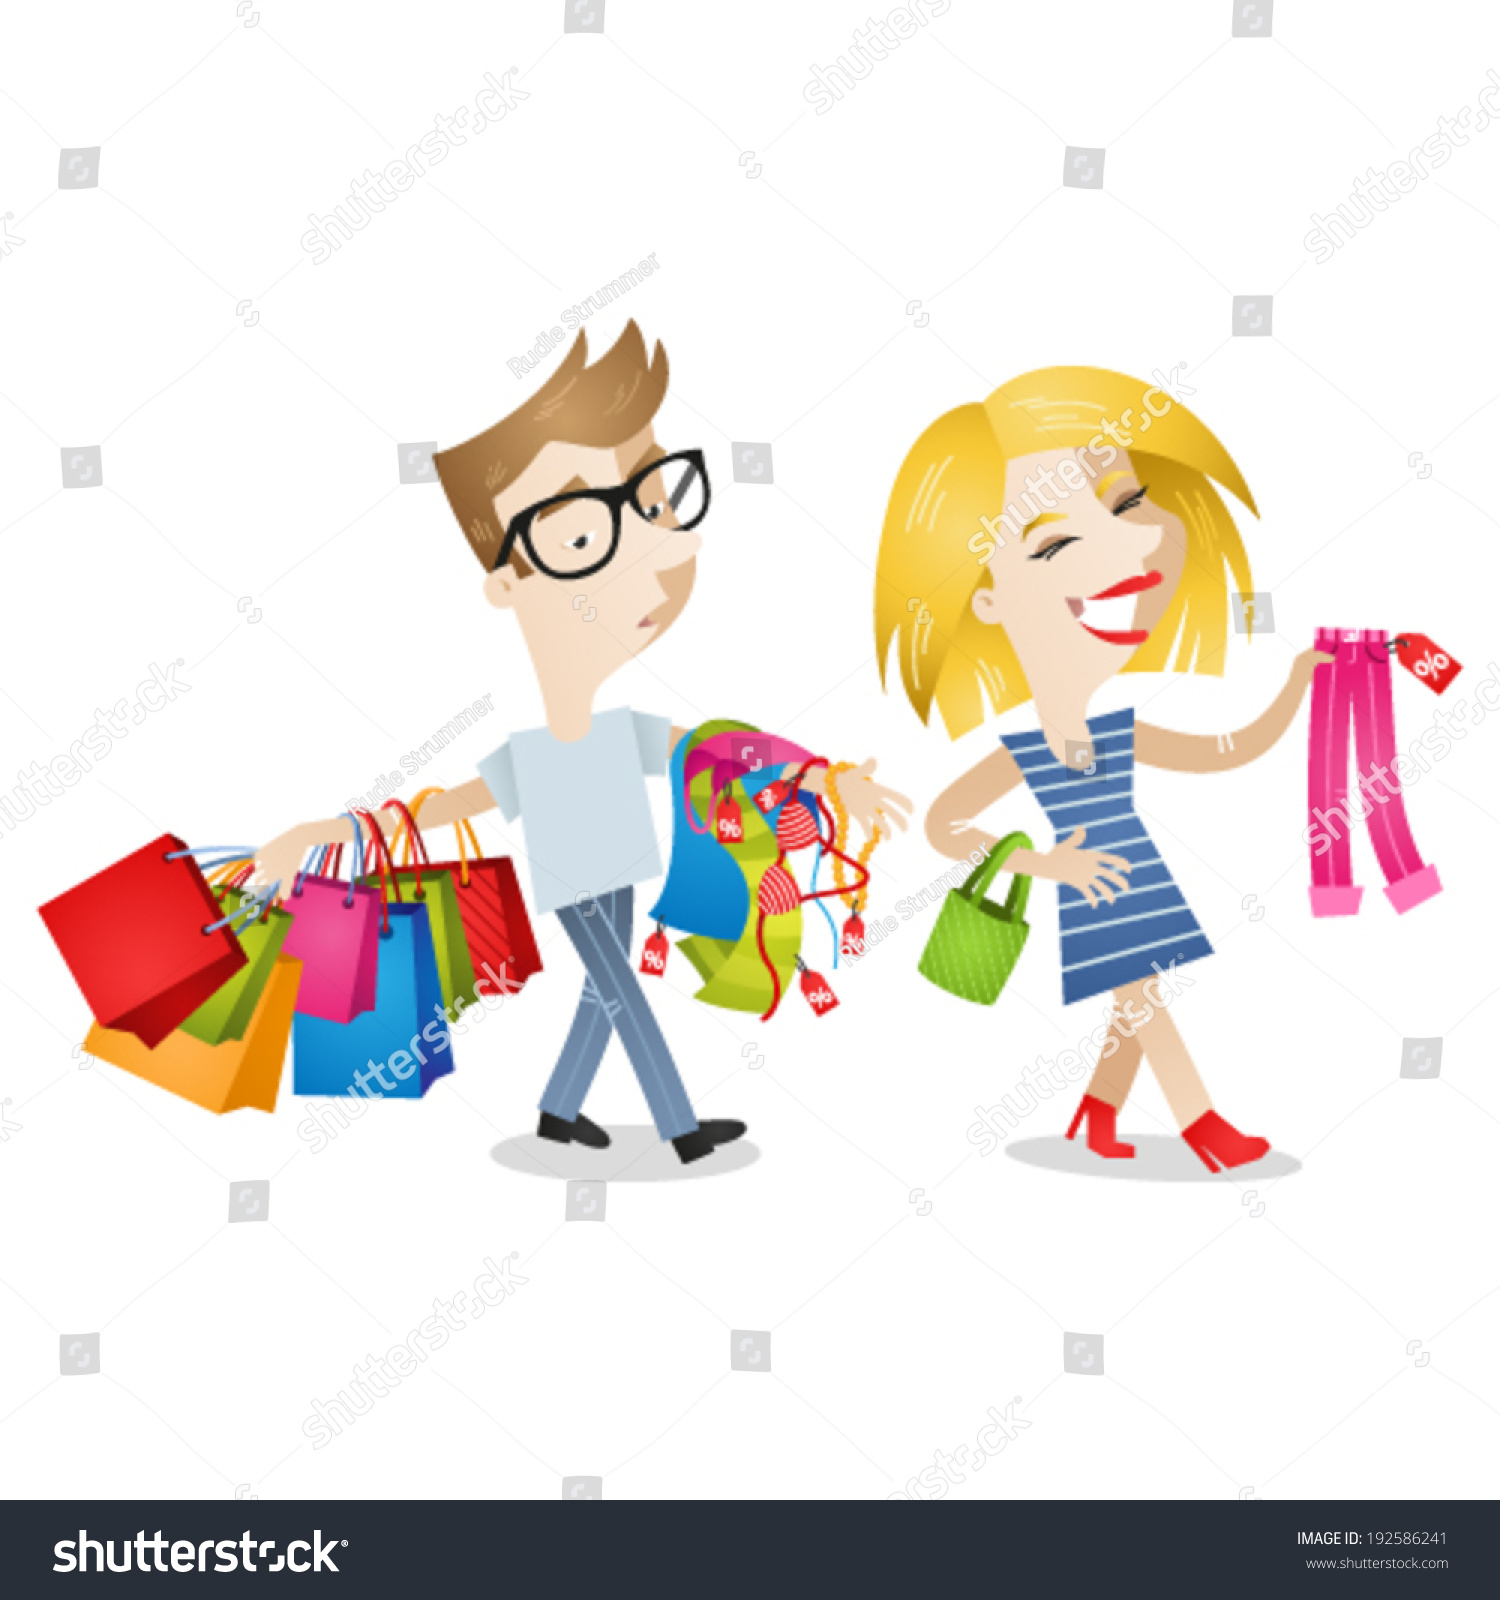 Cute Girl Stock Vectors Clipart and Illustrations